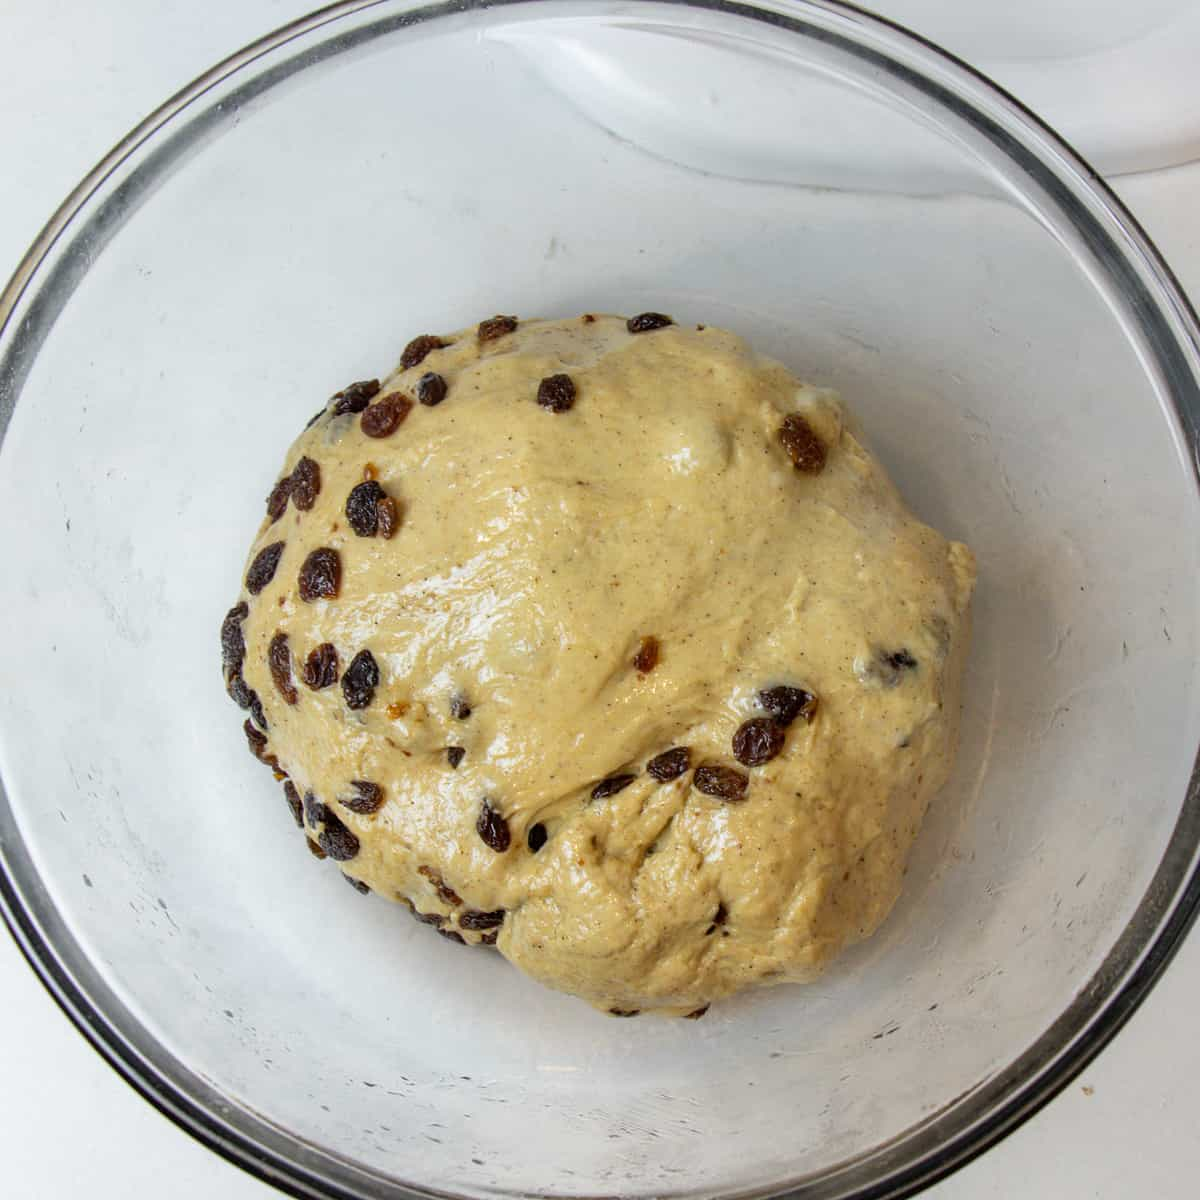 Dough in a glass bowl before proofing.